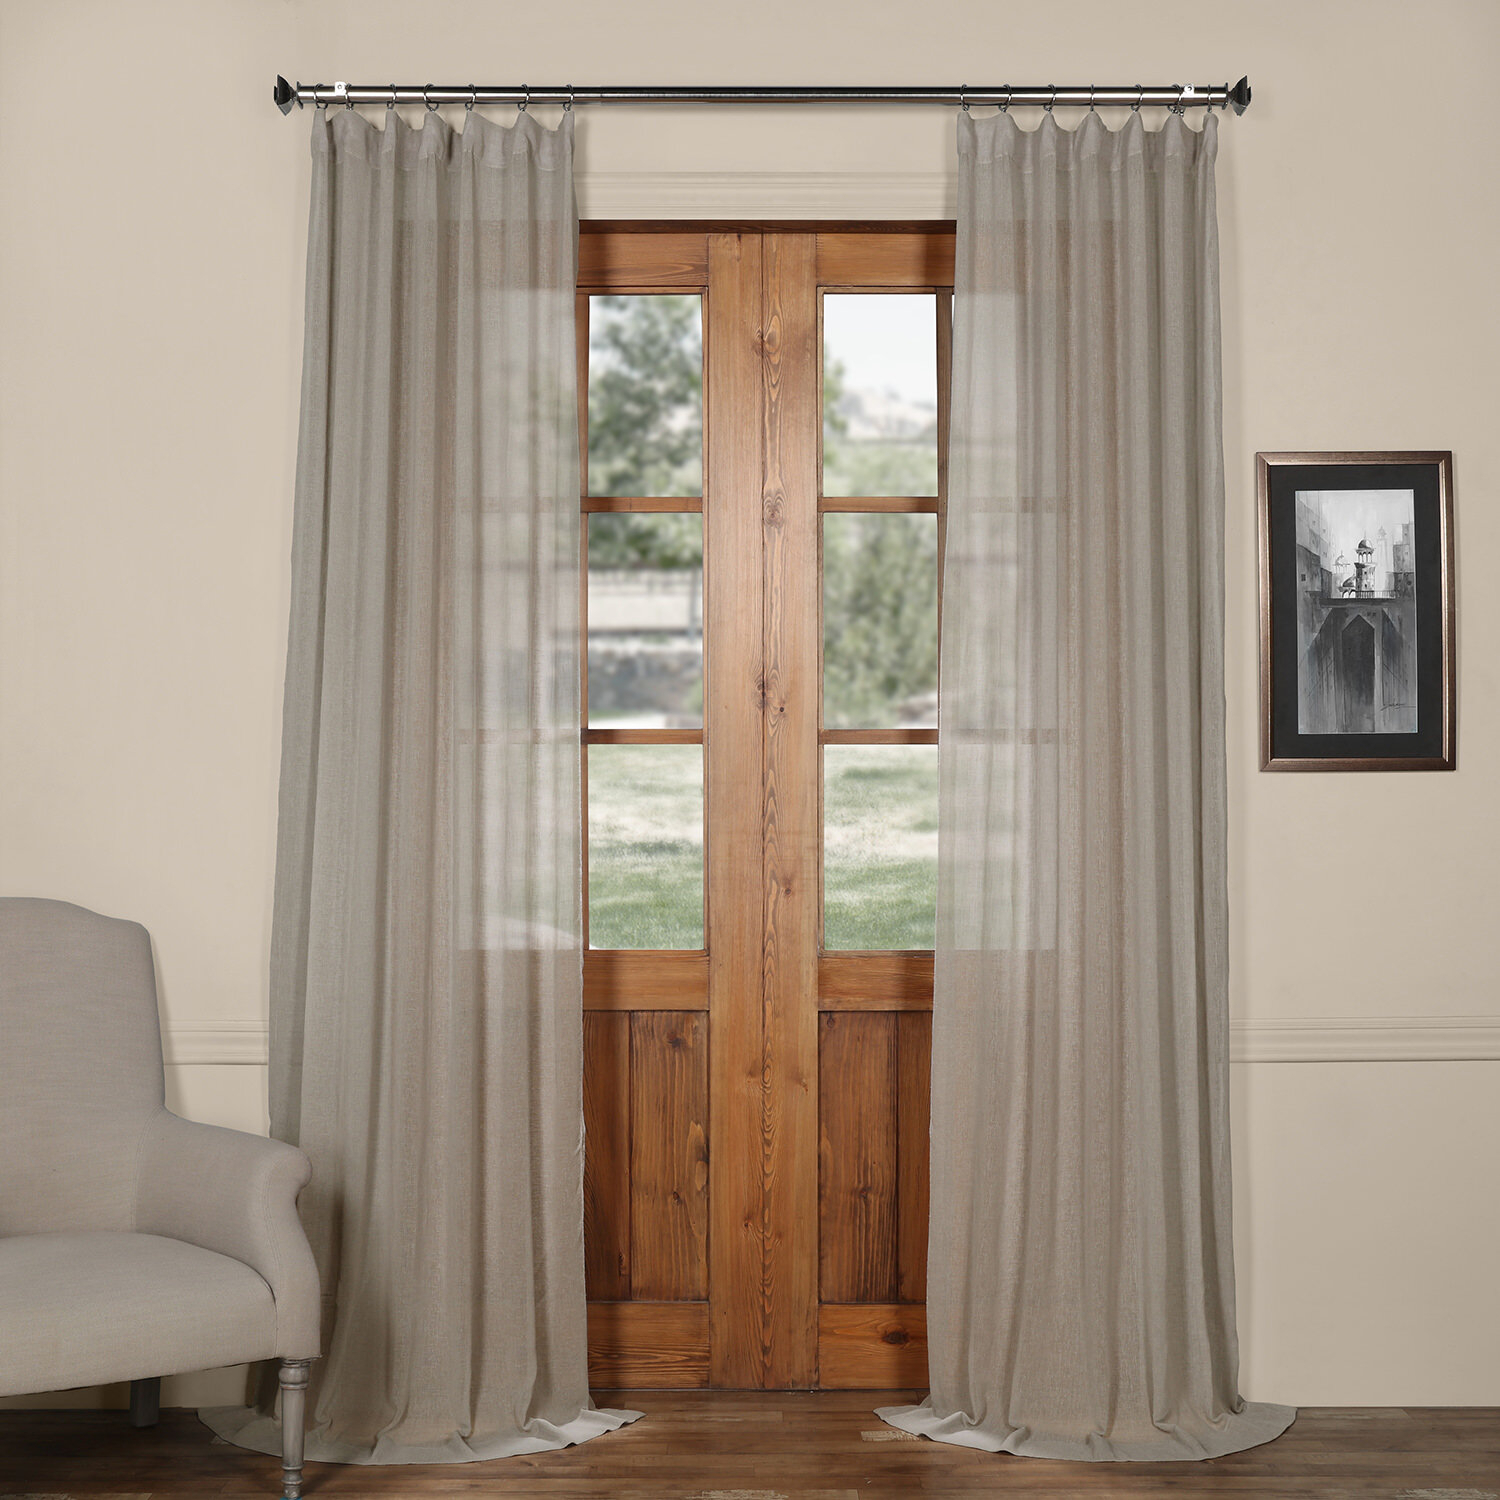 Bowley Solid Sheer Tab Top Single Curtain Panel Within Tab Top Sheer Single Curtain Panels (View 15 of 30)